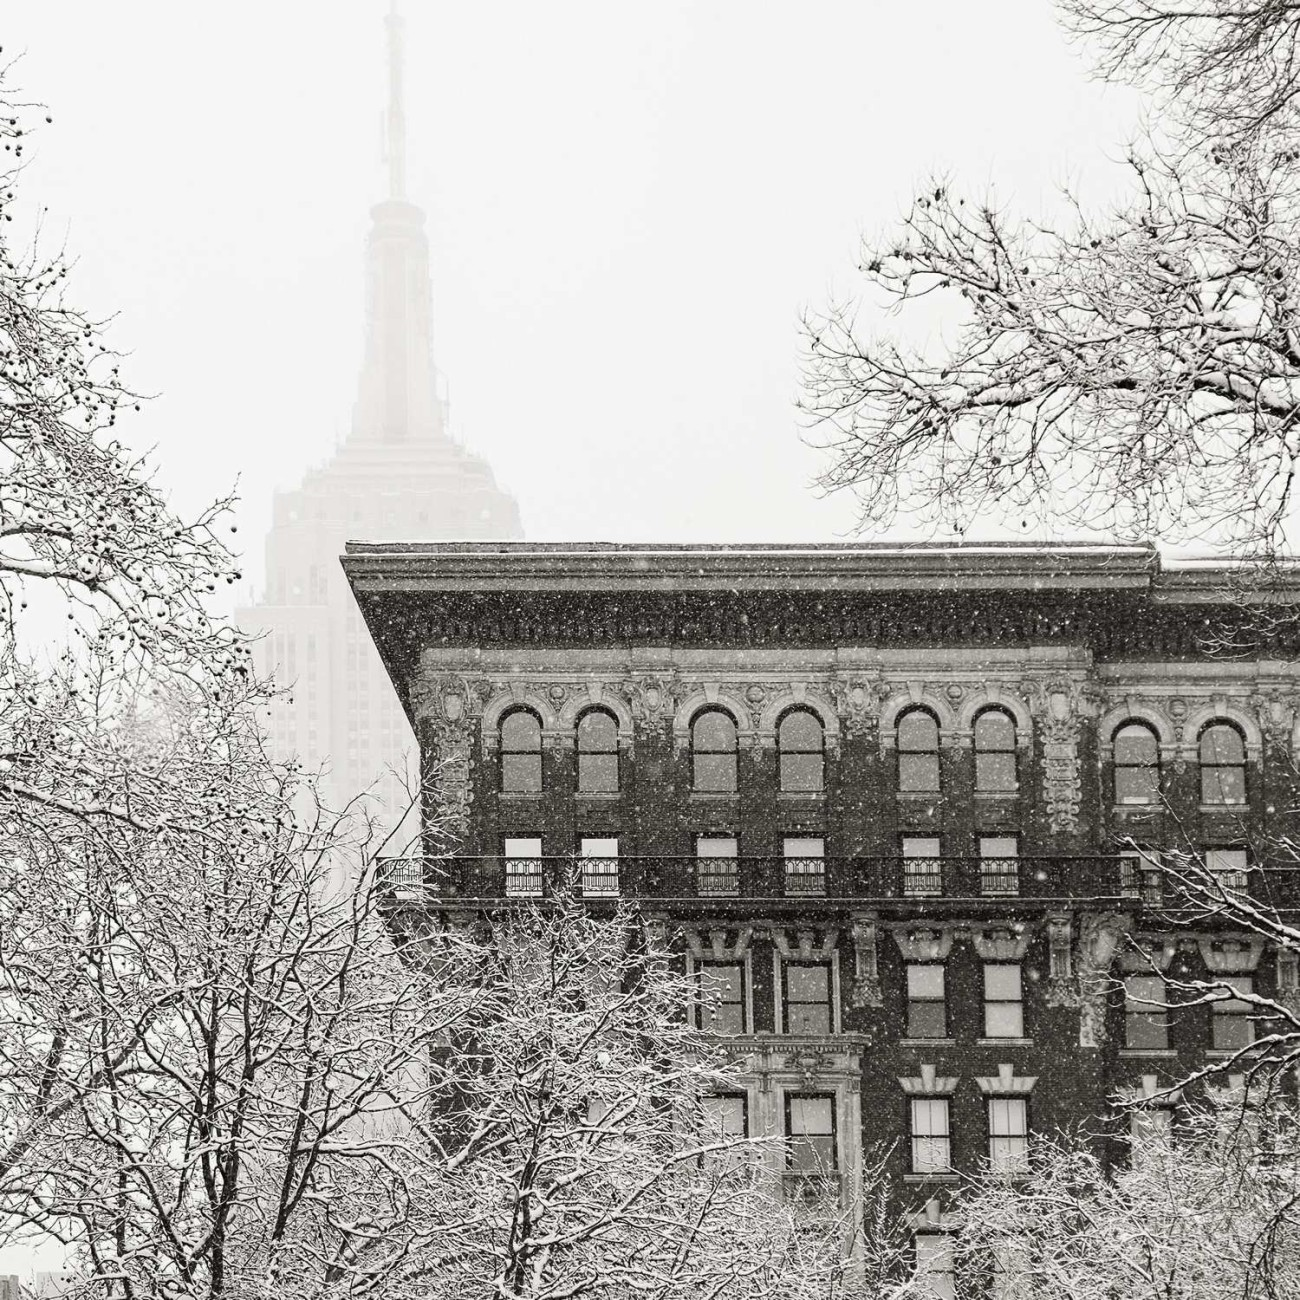 Empire State Building in falling snow, New York, 2015